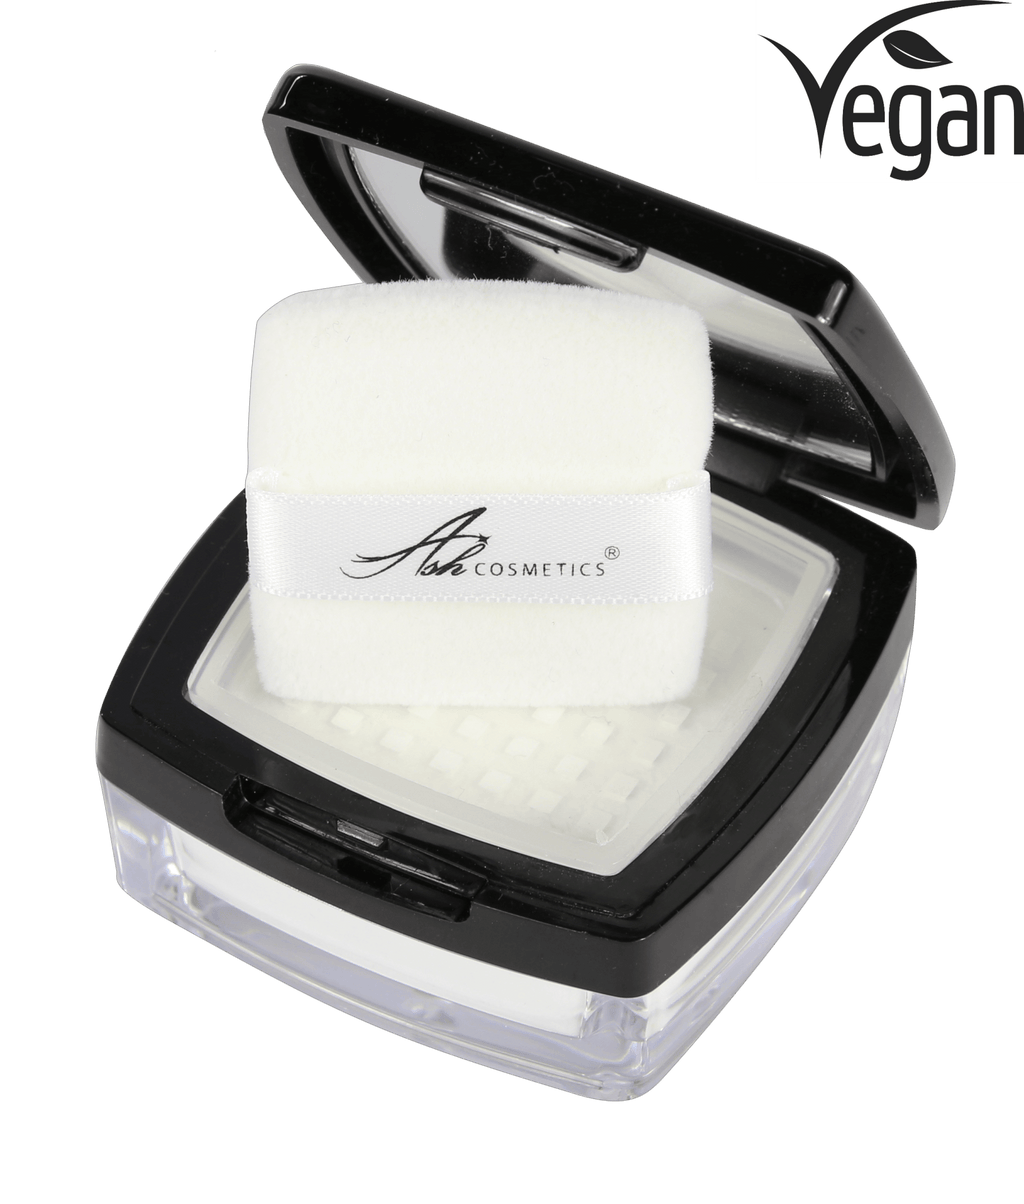 AshcosmeticsPixel Perfect HD translucent setting powder VEGAN